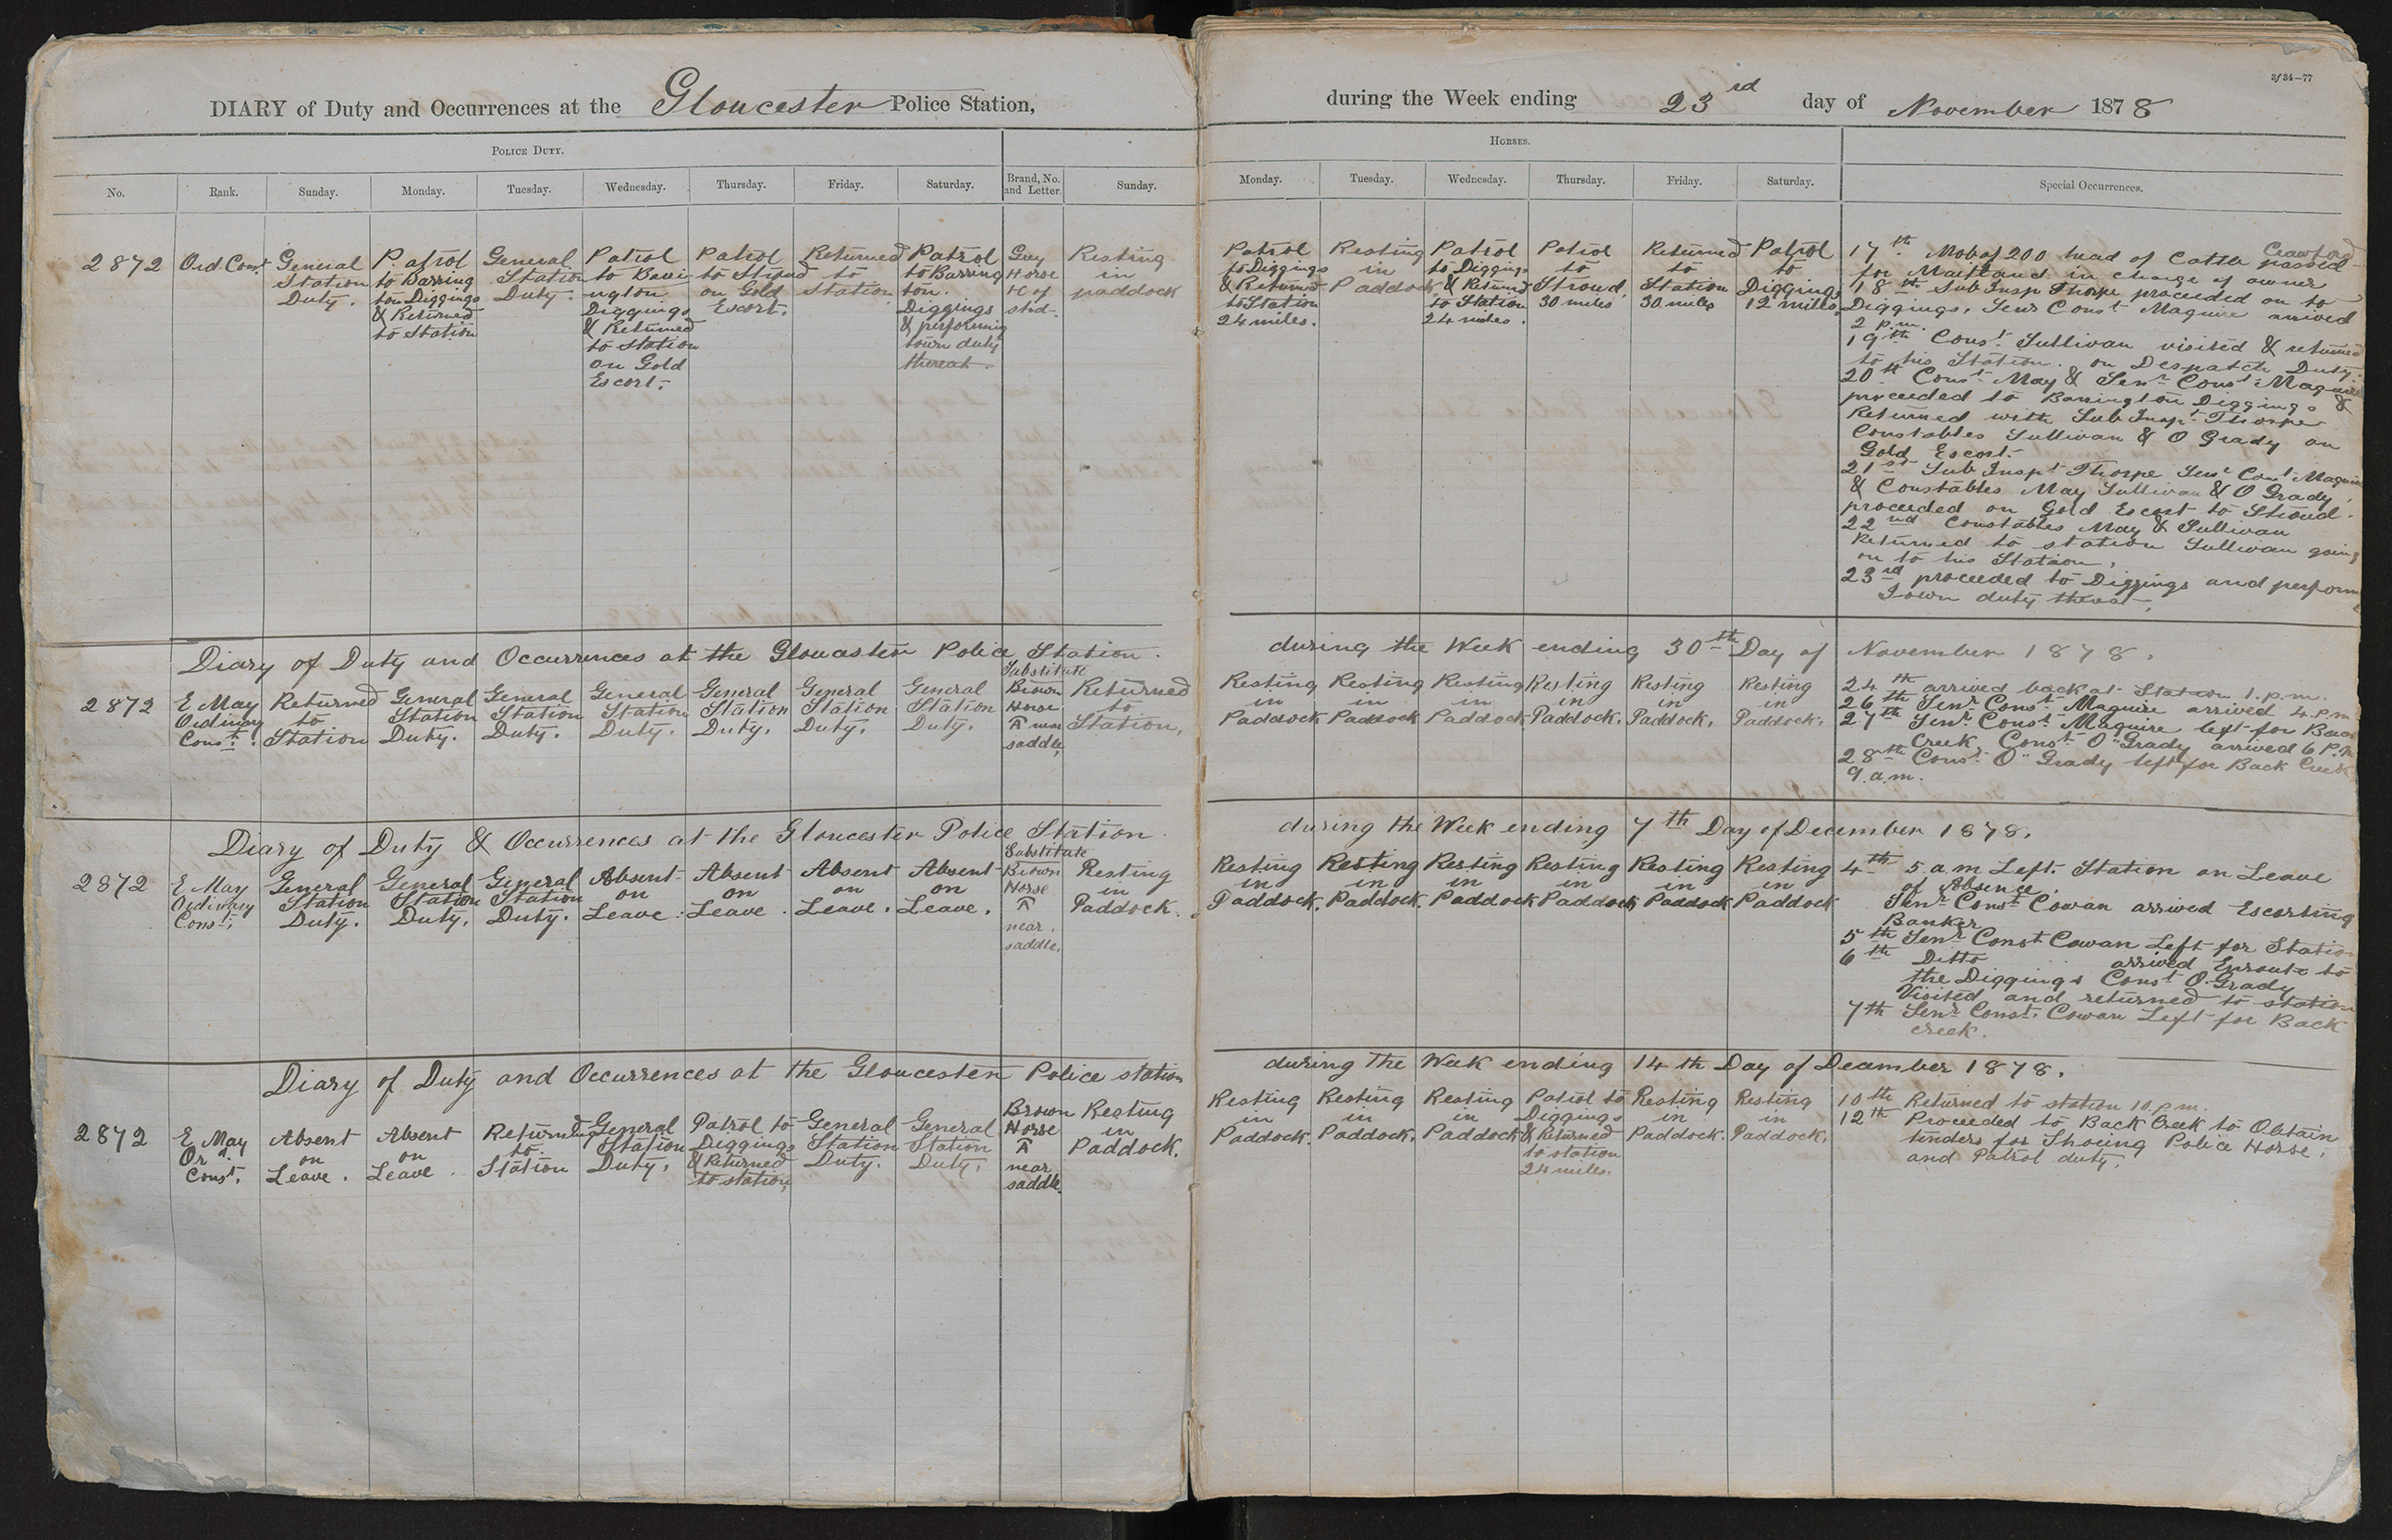 Diary of duty and occurrences at the Gloucester Police Station during the week ending the 23rd day of November 1878